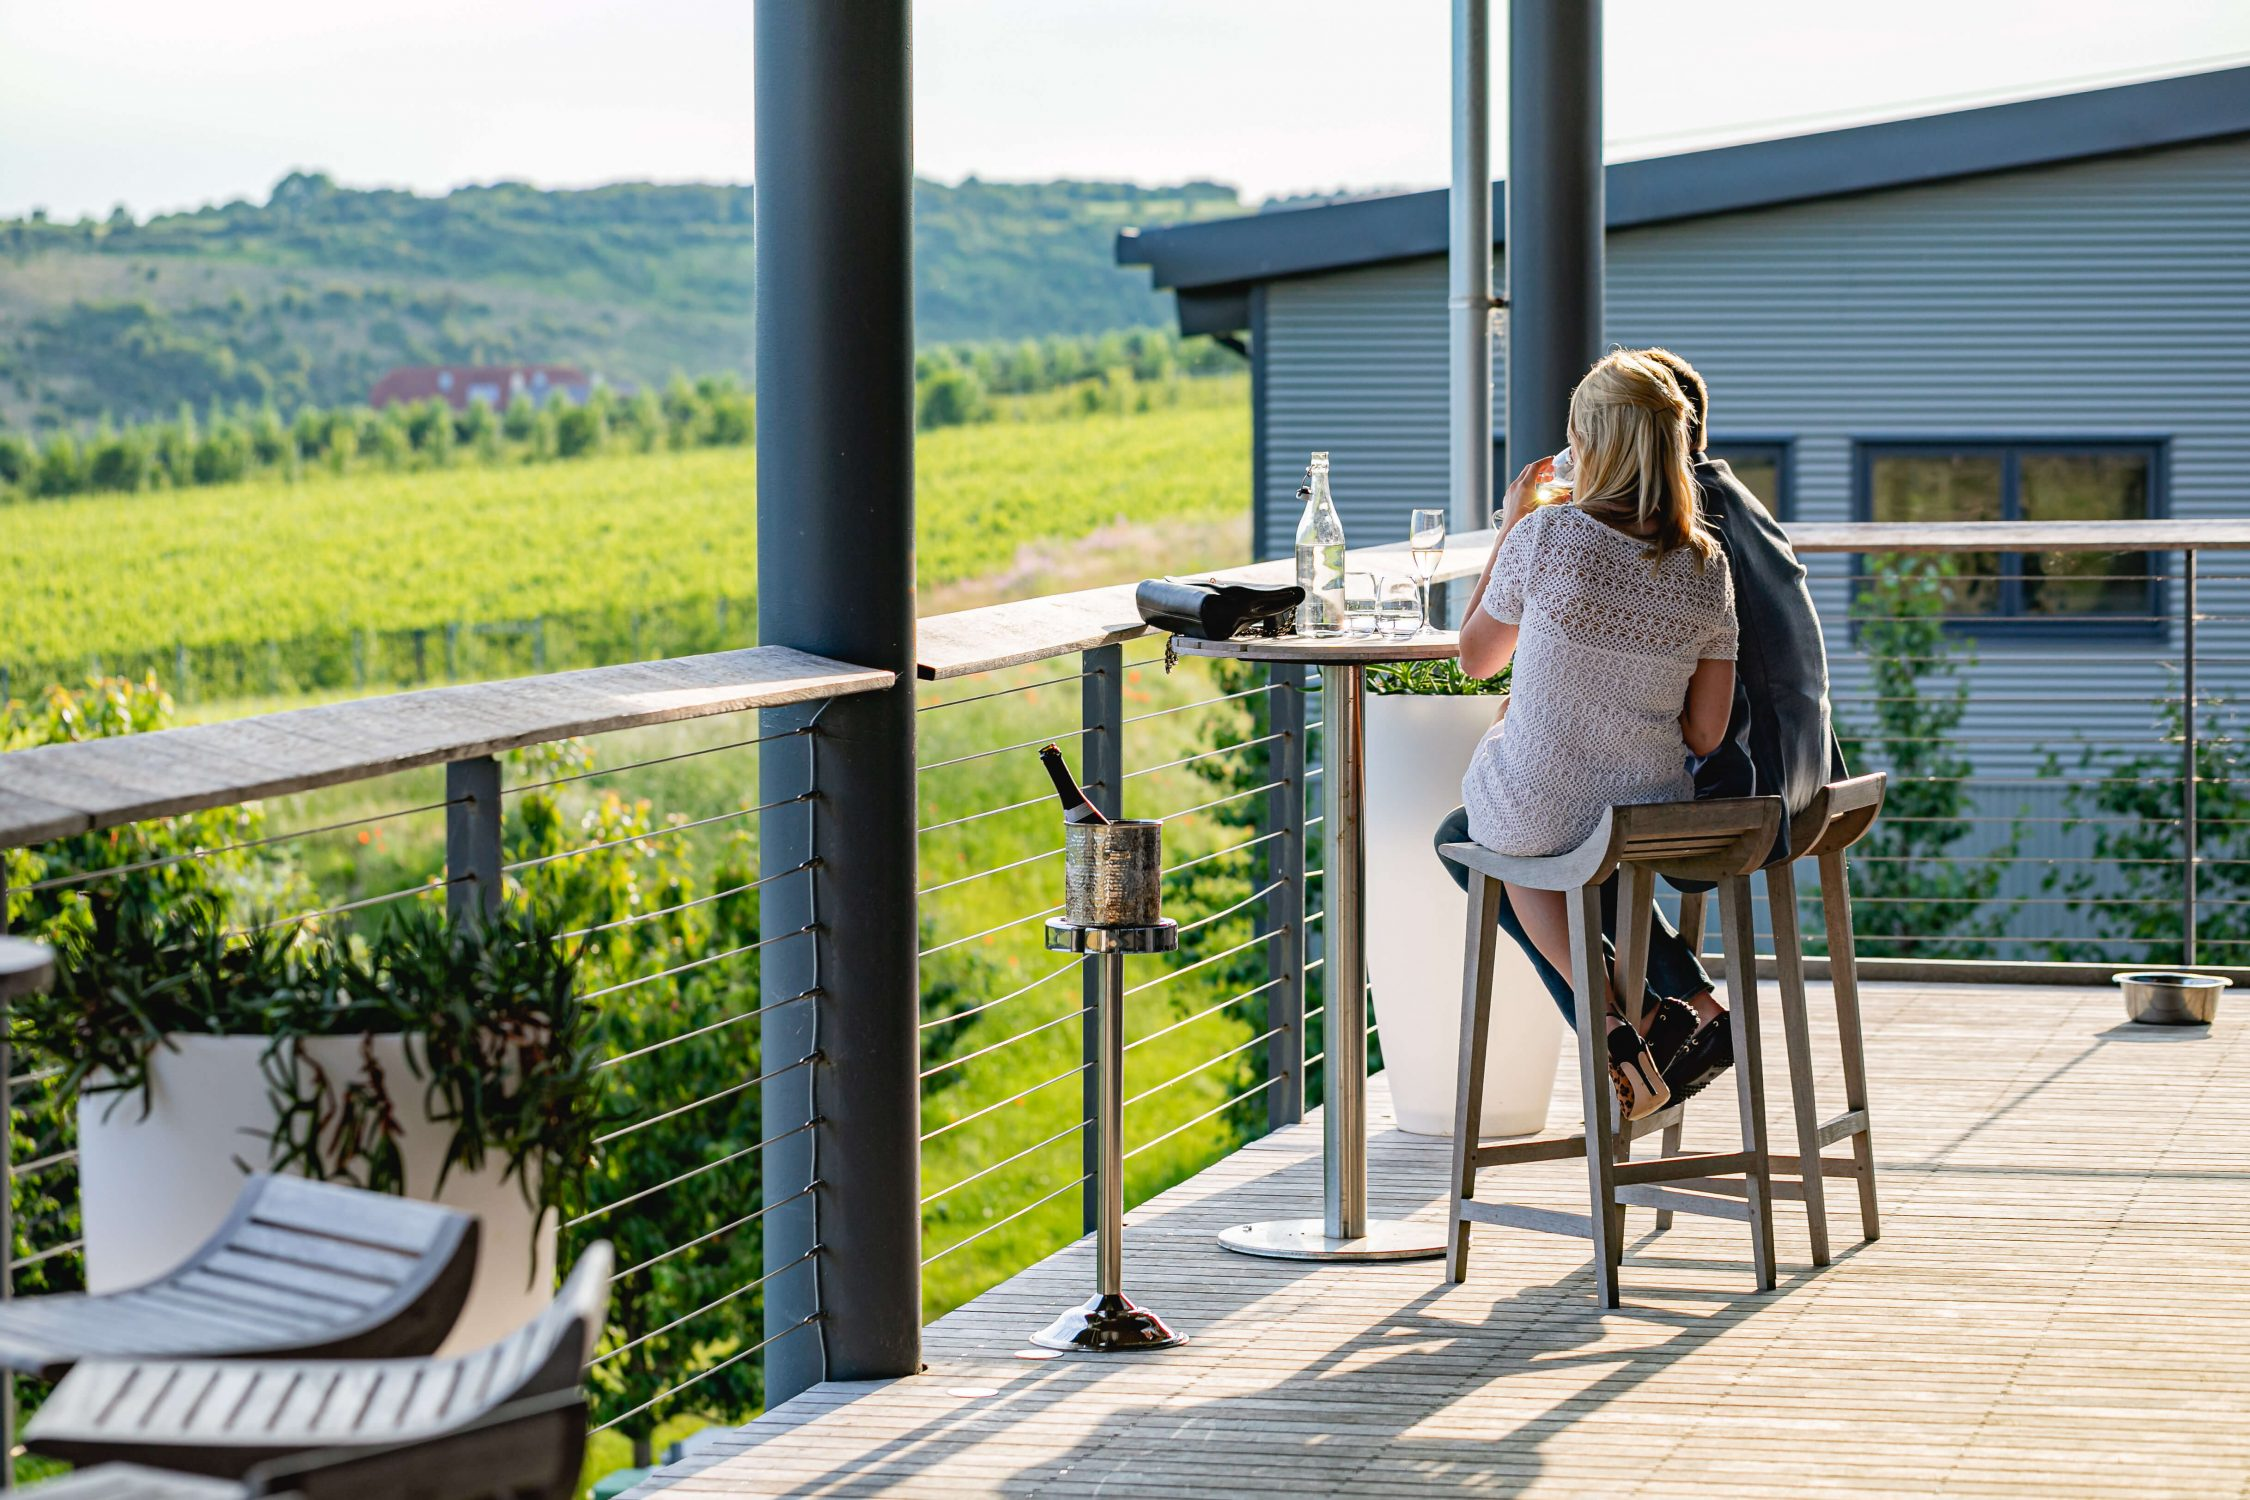 Tasting Room balcony